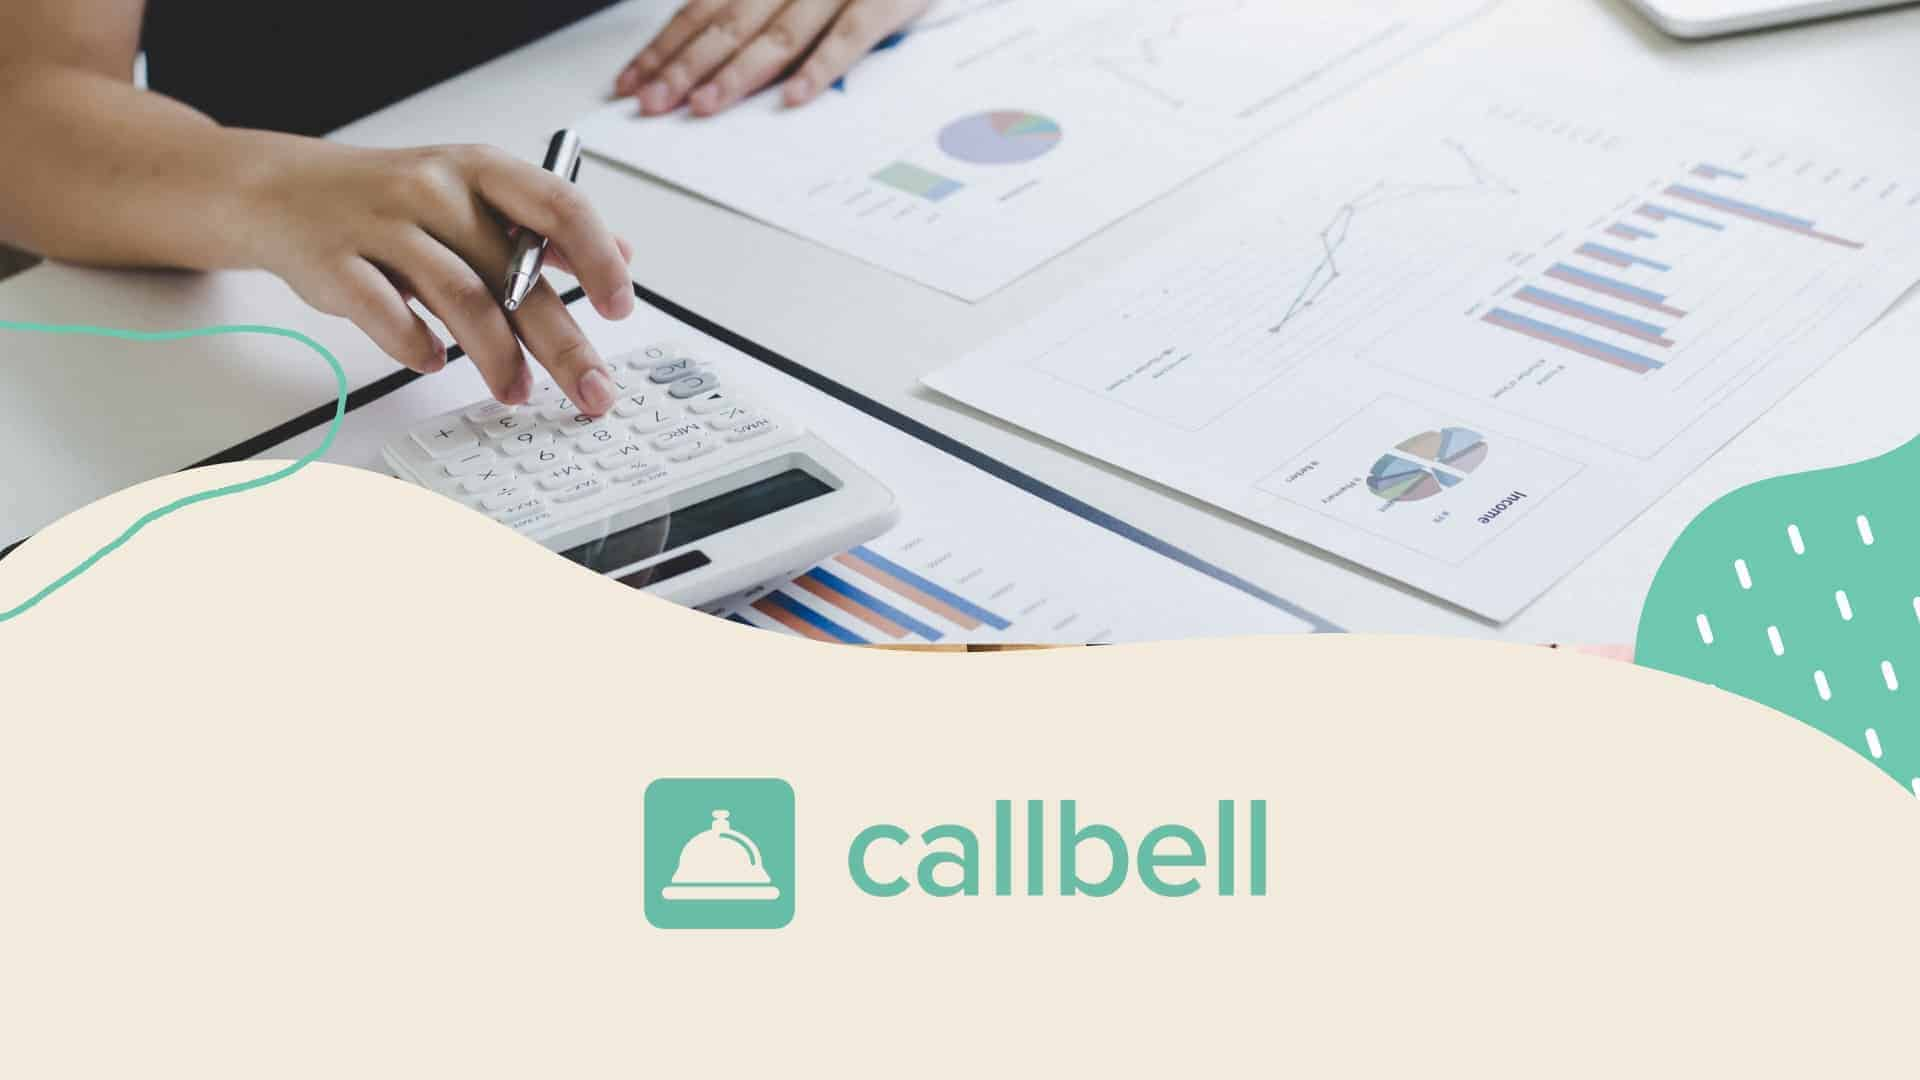 Why is it advisable to manage messages via Callbell?